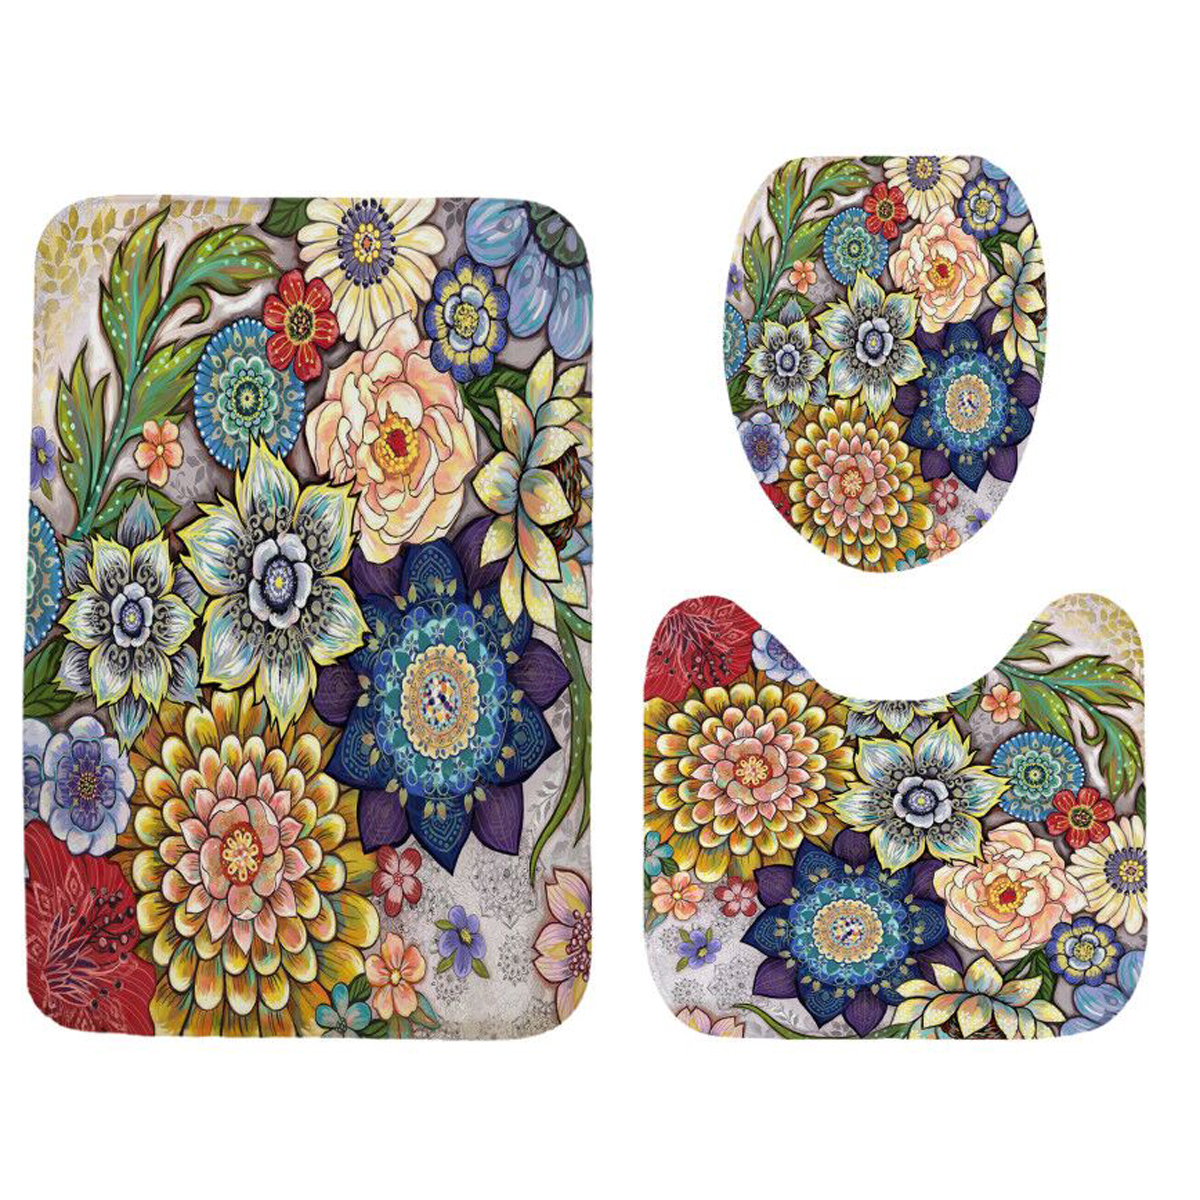 Bohemian Flowers Waterproof 71x71 Shower Curtain Or 3pcs Toilet Seat Cover Bath Mat Rugs Carpets Bathroom Set Bathroom Decor Walmart Com Walmart Com